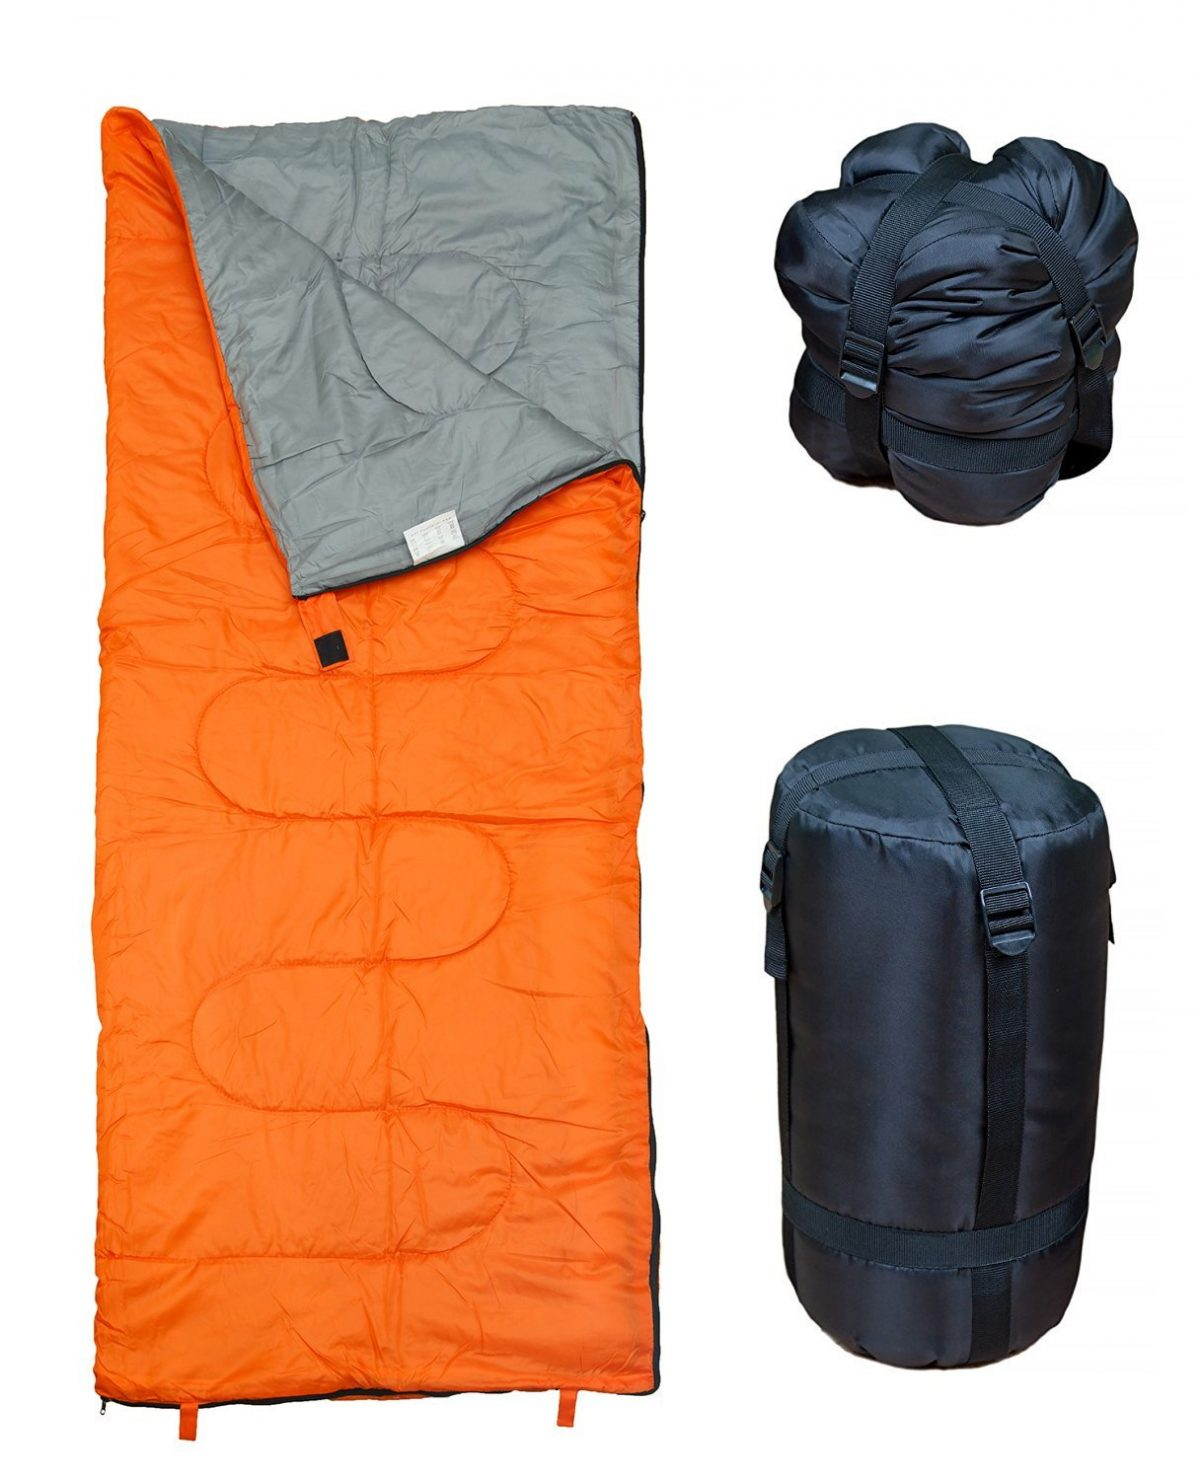 A Revelcamp sleeping bag